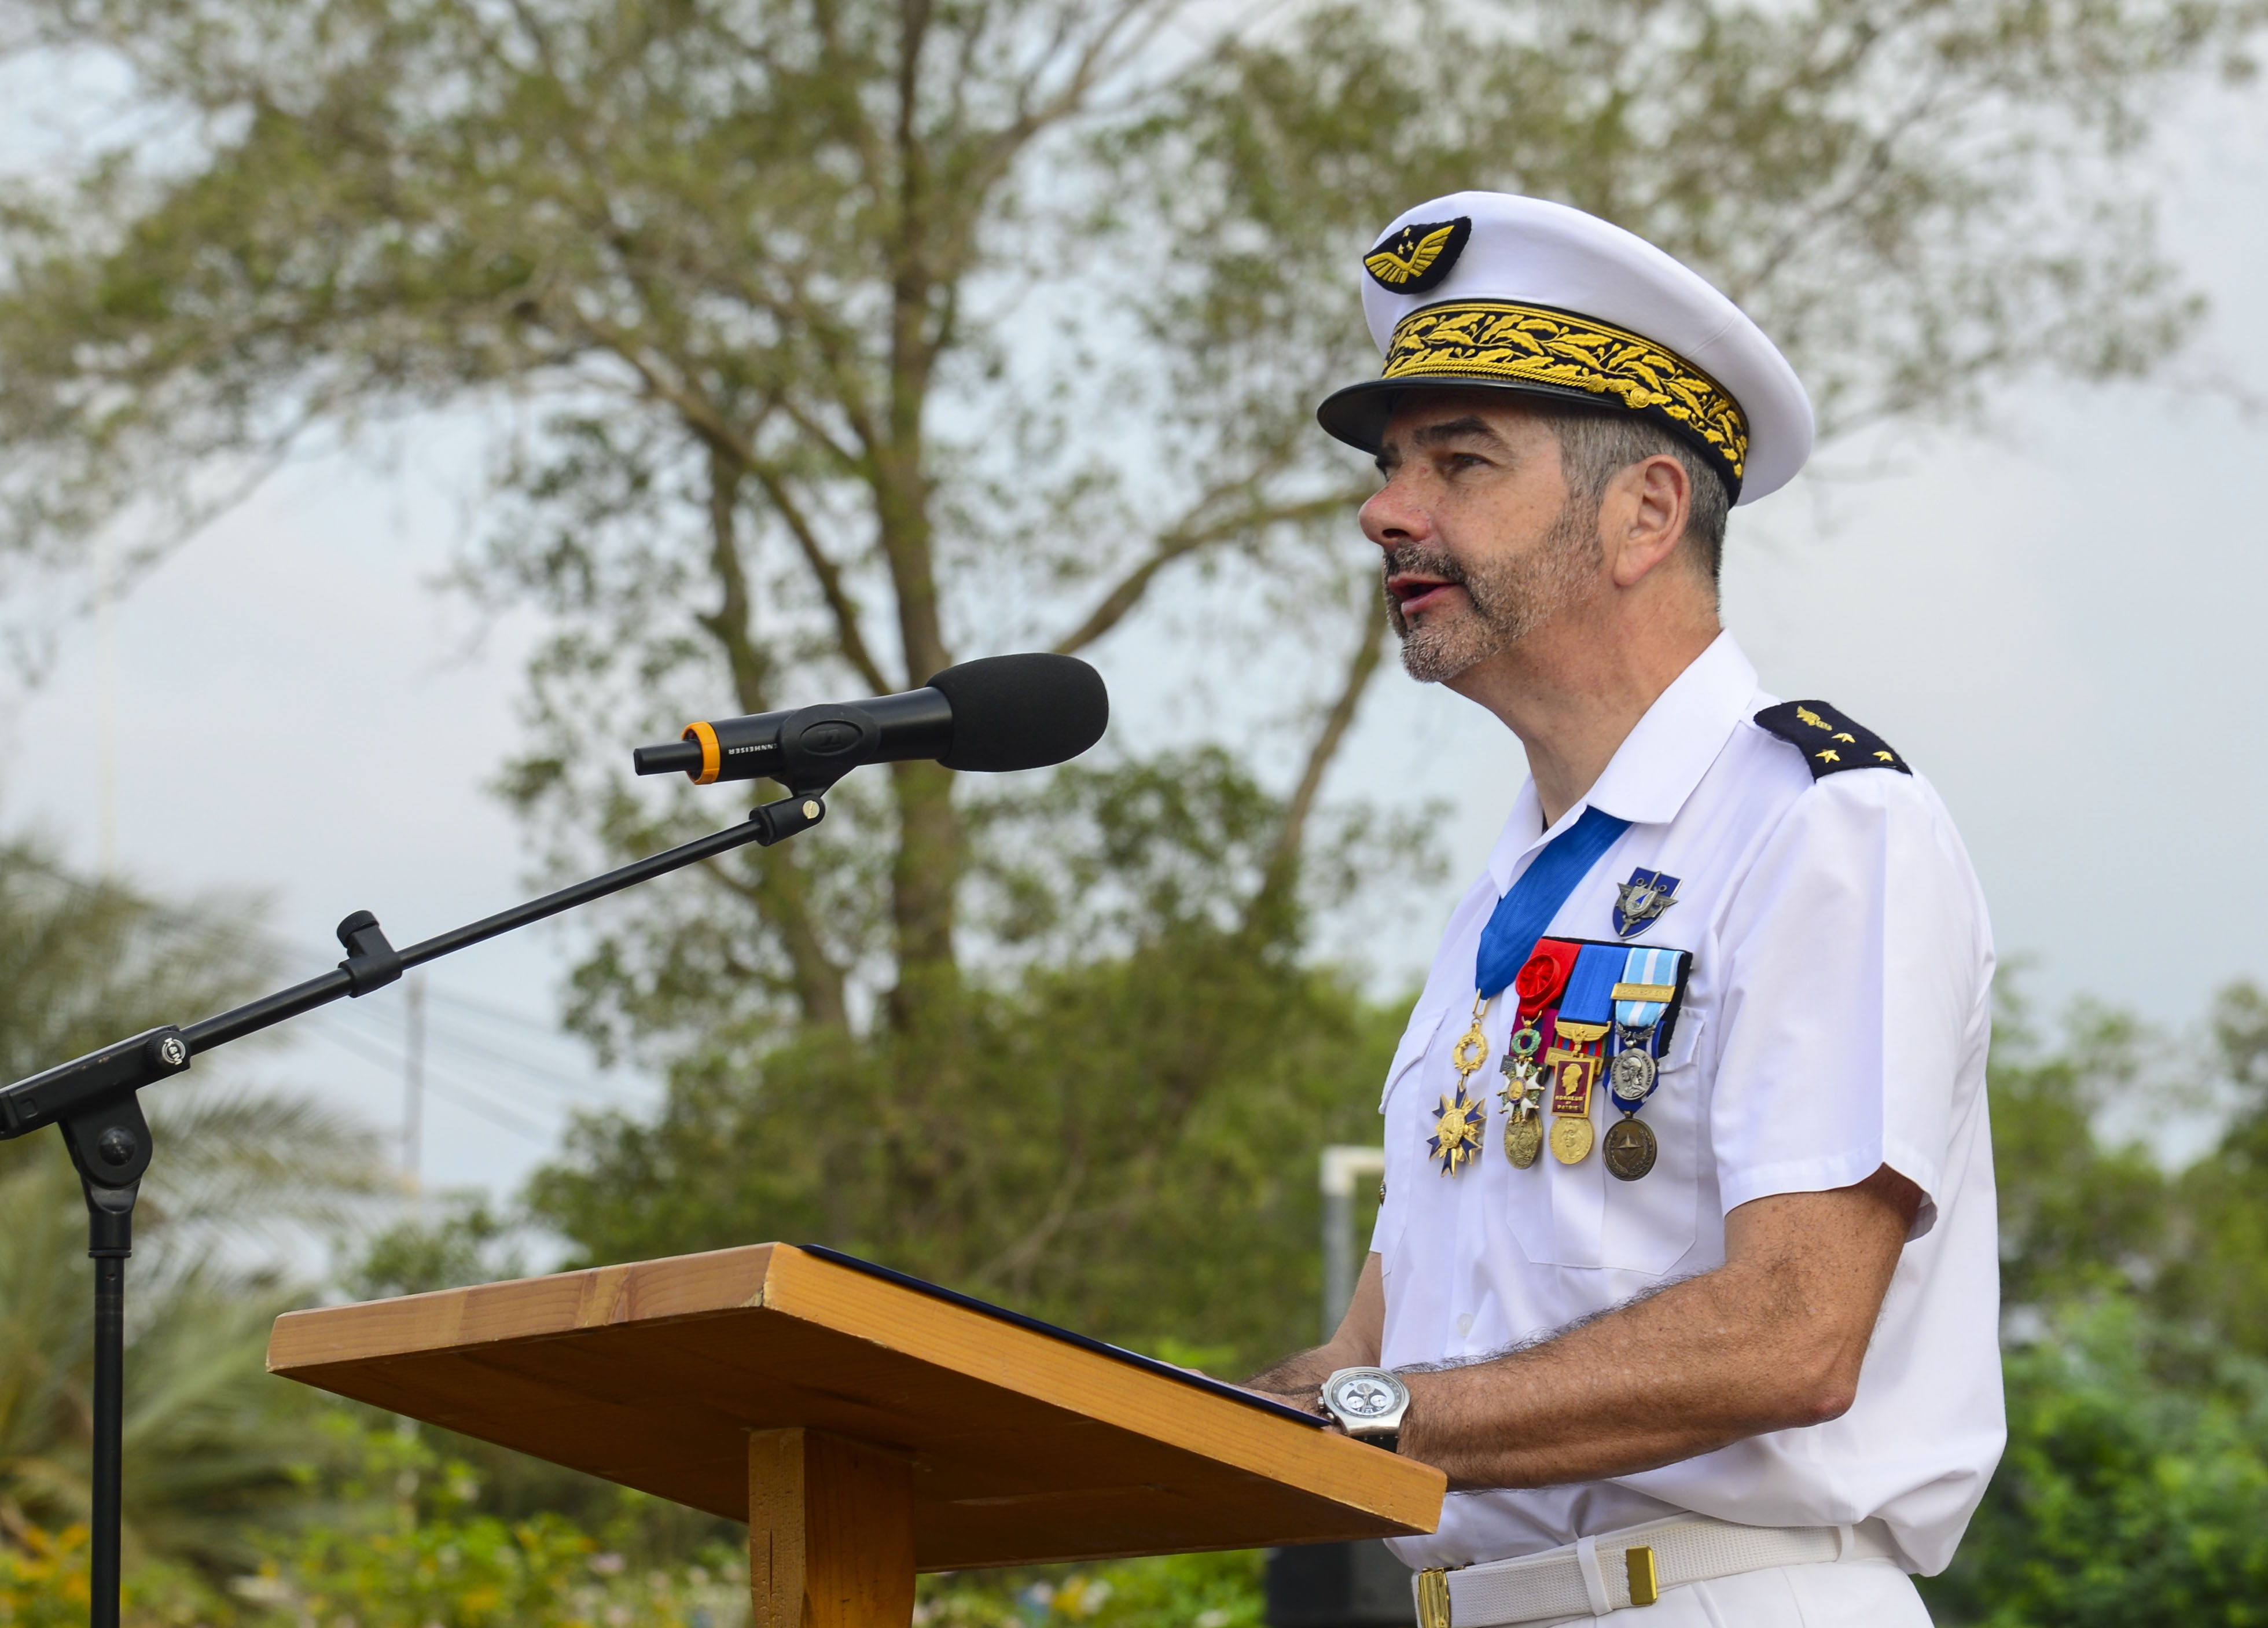 Camp Lemonnier and Combined Joint Task Force-Horn of Africa representatives and French forces in Djibouti commemorate Victory in Europe Day, May 8, 2016, at the French base in Djibouti. During the ceremony, General Philippe Montocchio, commander of French forces in Djibouti, spoke about one of the strongest elements of the war, the men and women across Europe resisting against the invading enemy. V-E Day, observed annually in France, celebrates the victory in Europe, ending World War II, and became a national French holiday. Charles de Gaulle, who led the French forces during the war, declared the victory of the Allied Armies and the United Nations over Germany, May 8, 1945. (U.S. Air Force photo by Senior Airman Benjamin Raughton/Released)